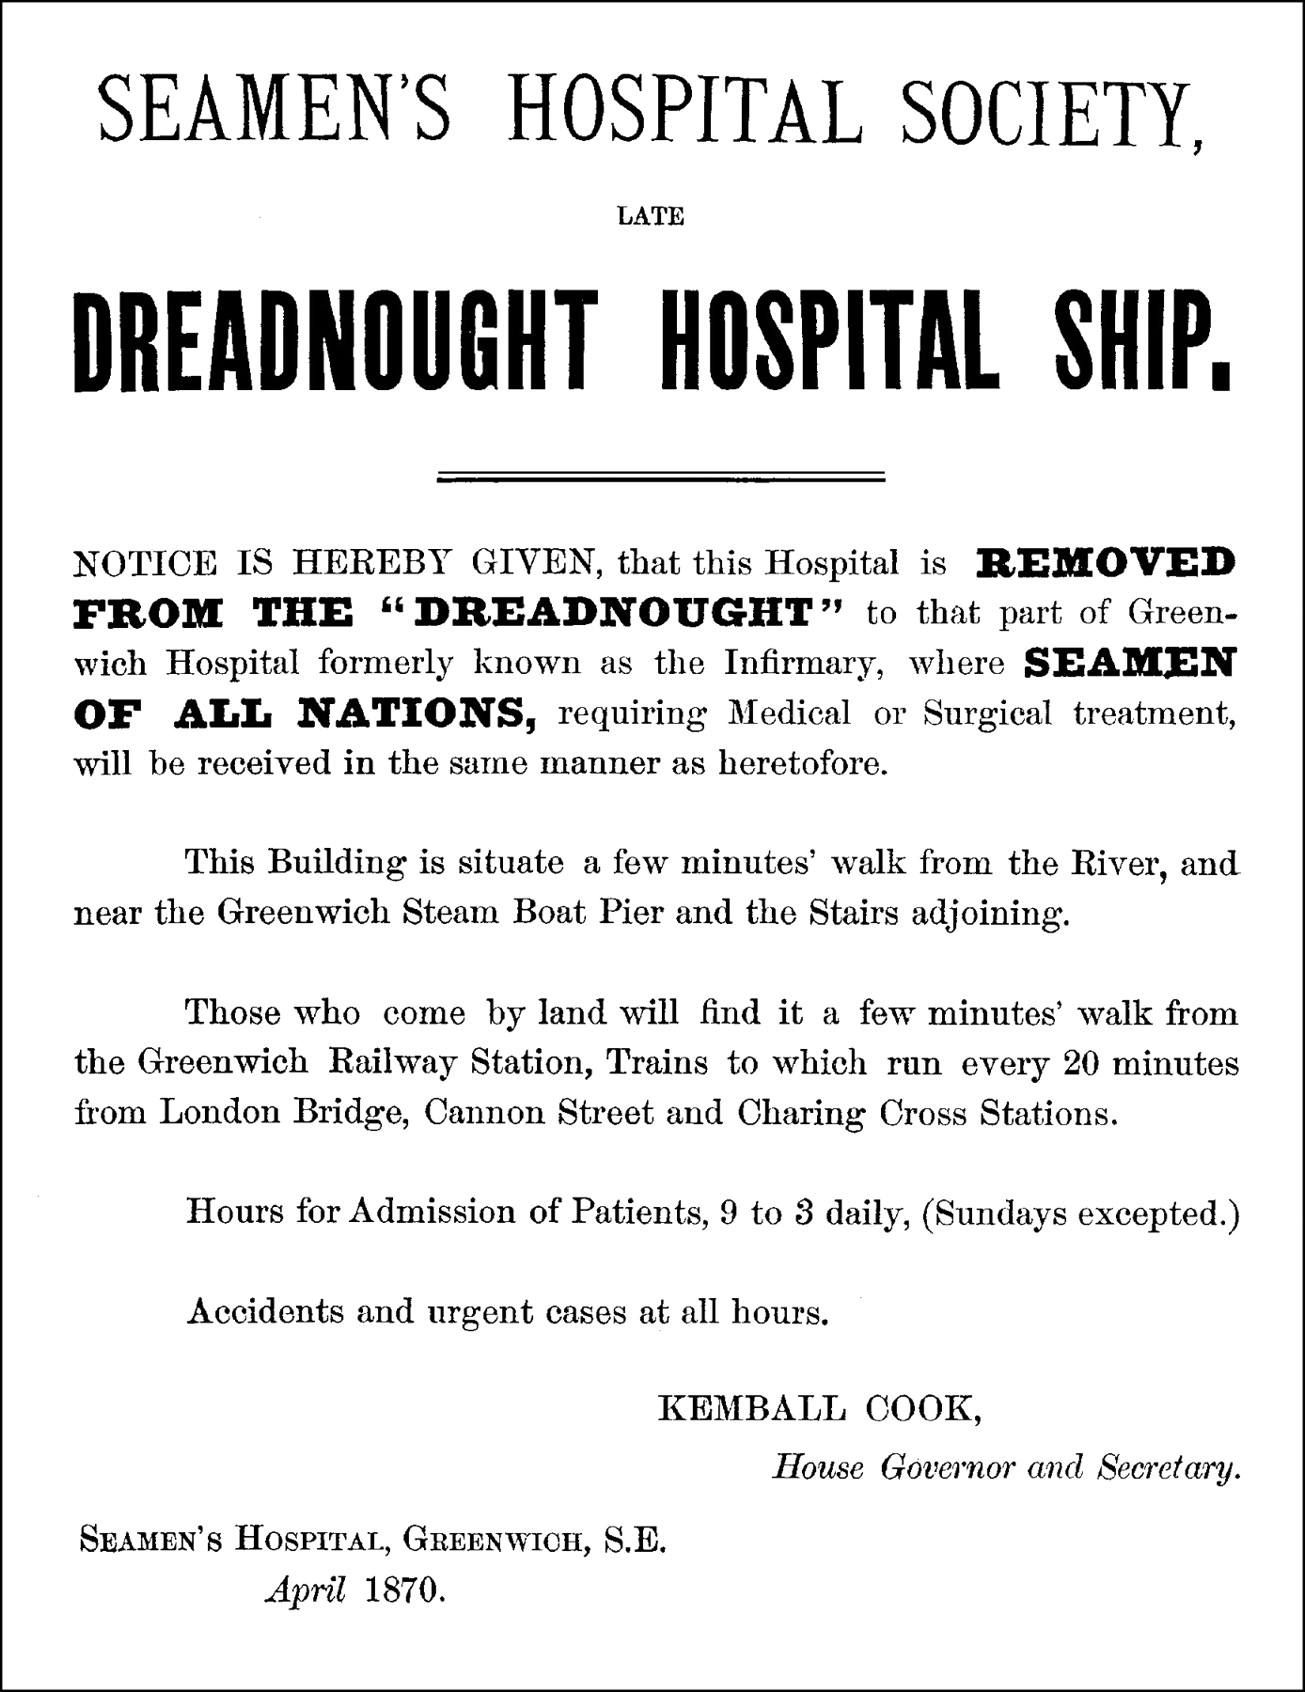 The Seamen's Hospital Society: a progenitor of the tropical